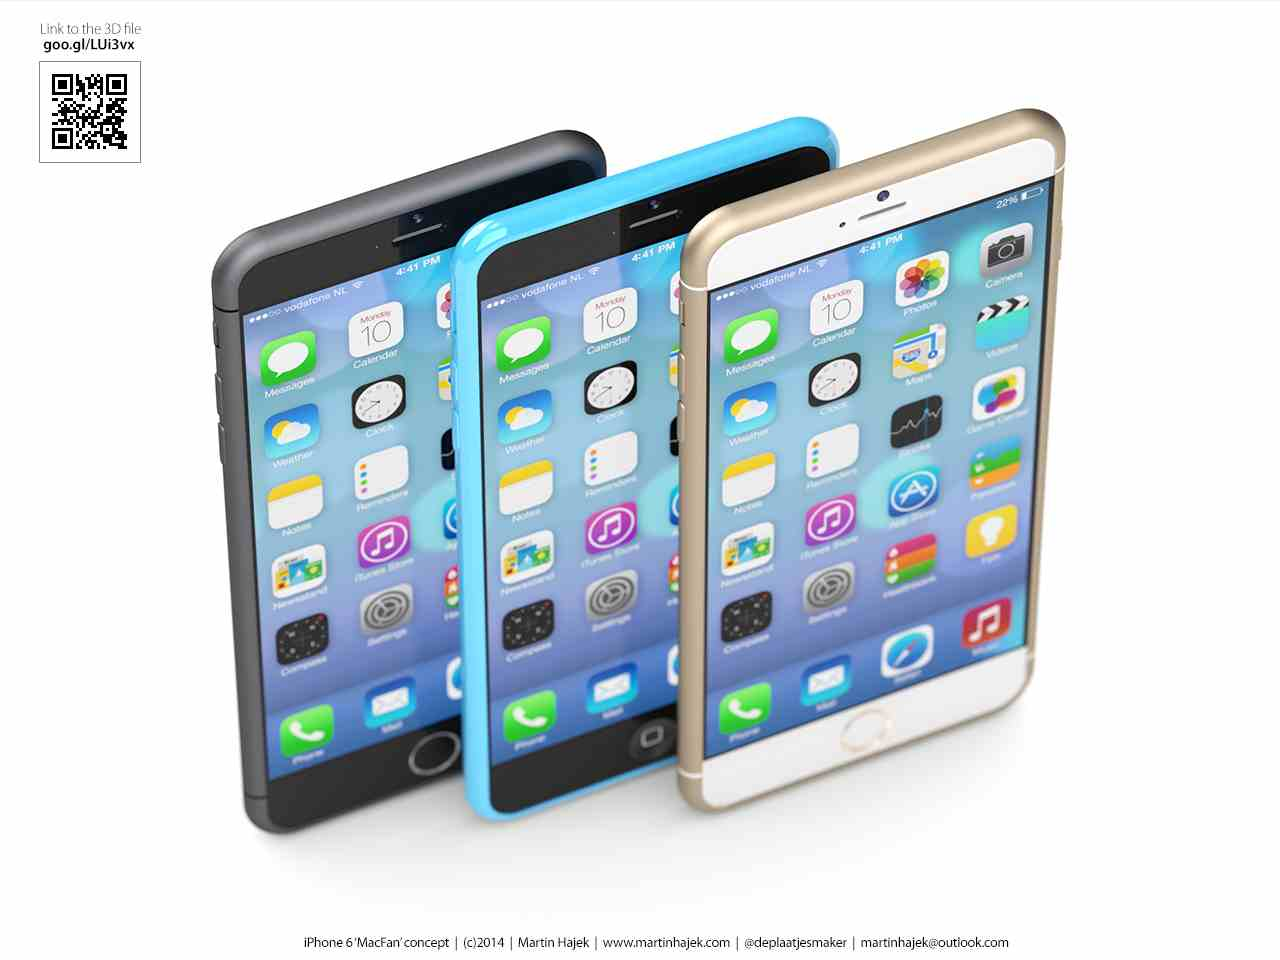 Apple-iPhone-6s-and-6c-concept (4)